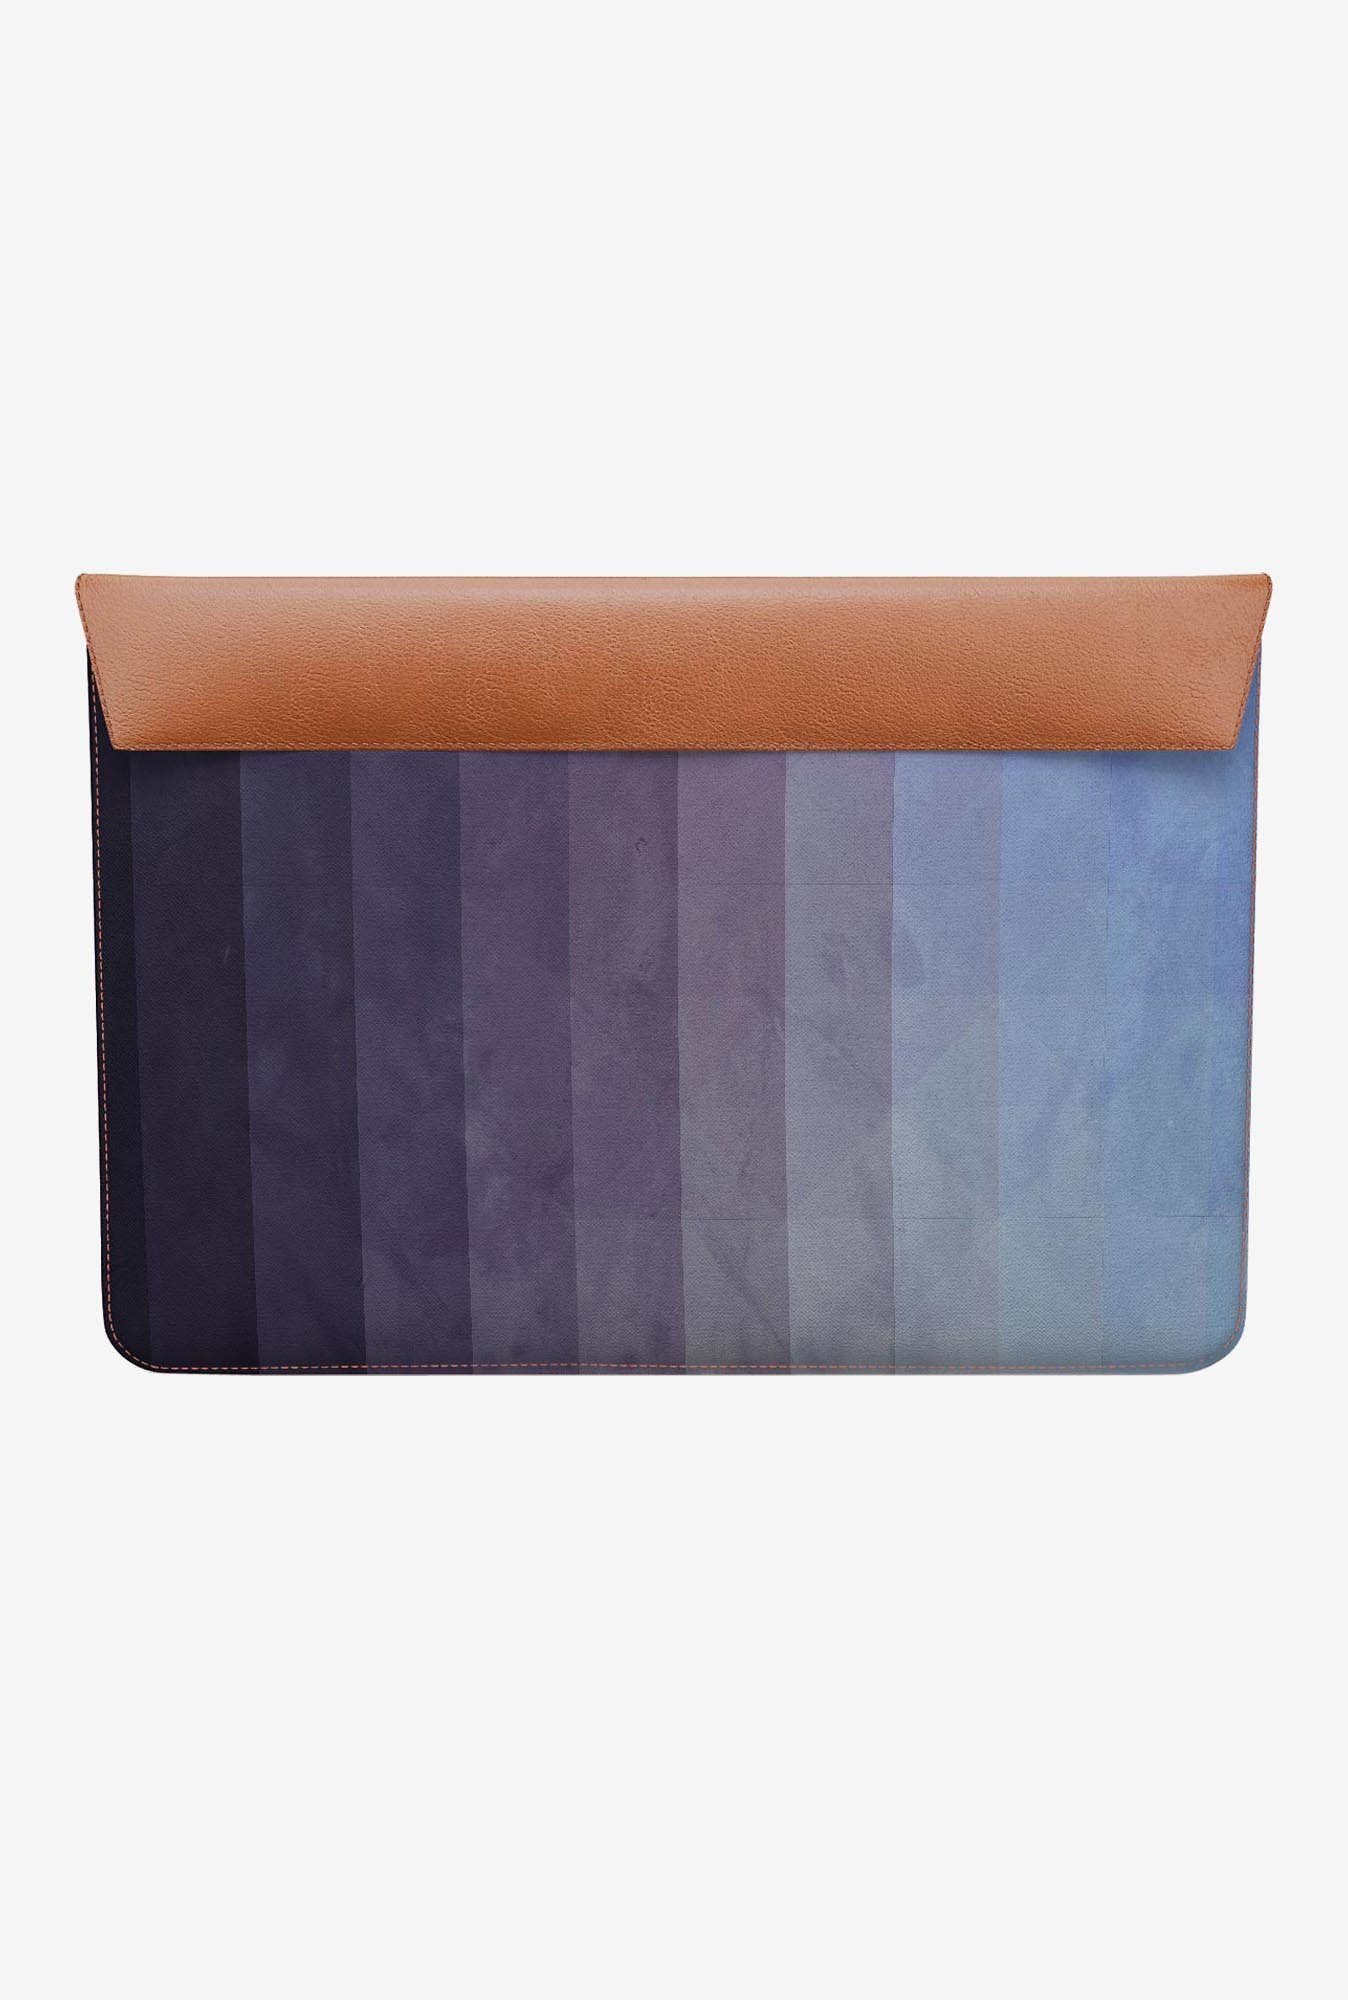 "DailyObjects Myssyng Yww Macbook Air 13"" Envelope Sleeve"